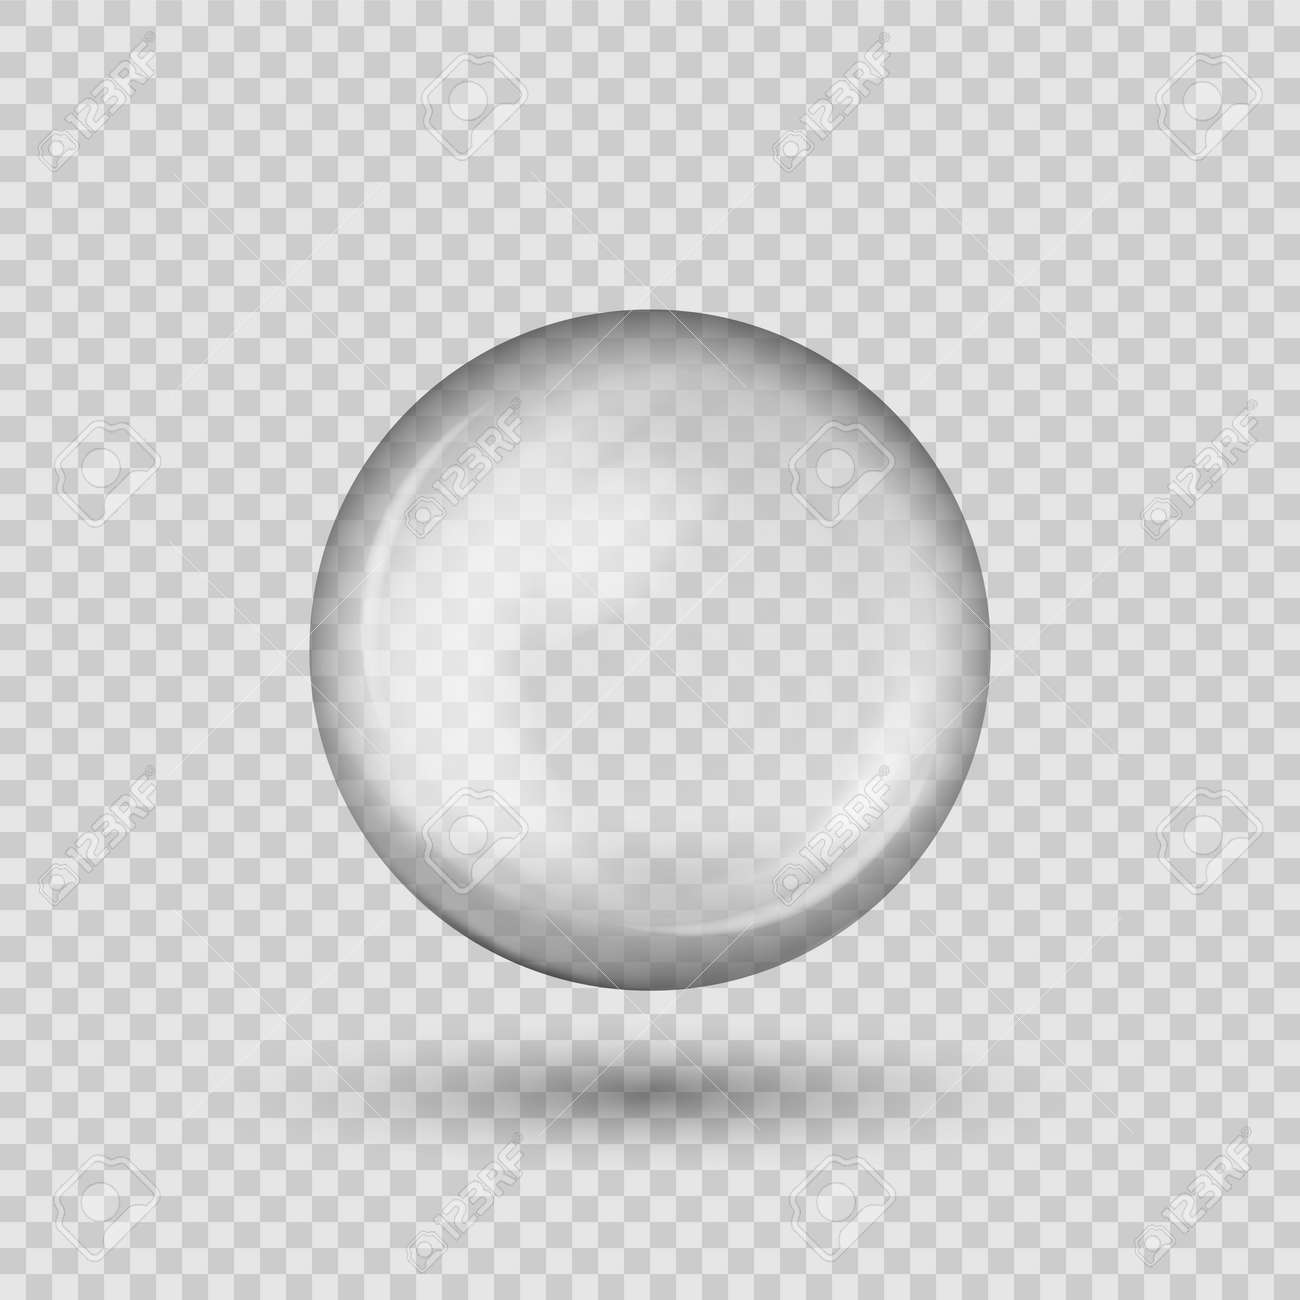 Translucent sphere with shadow on transparent background. - 146259207